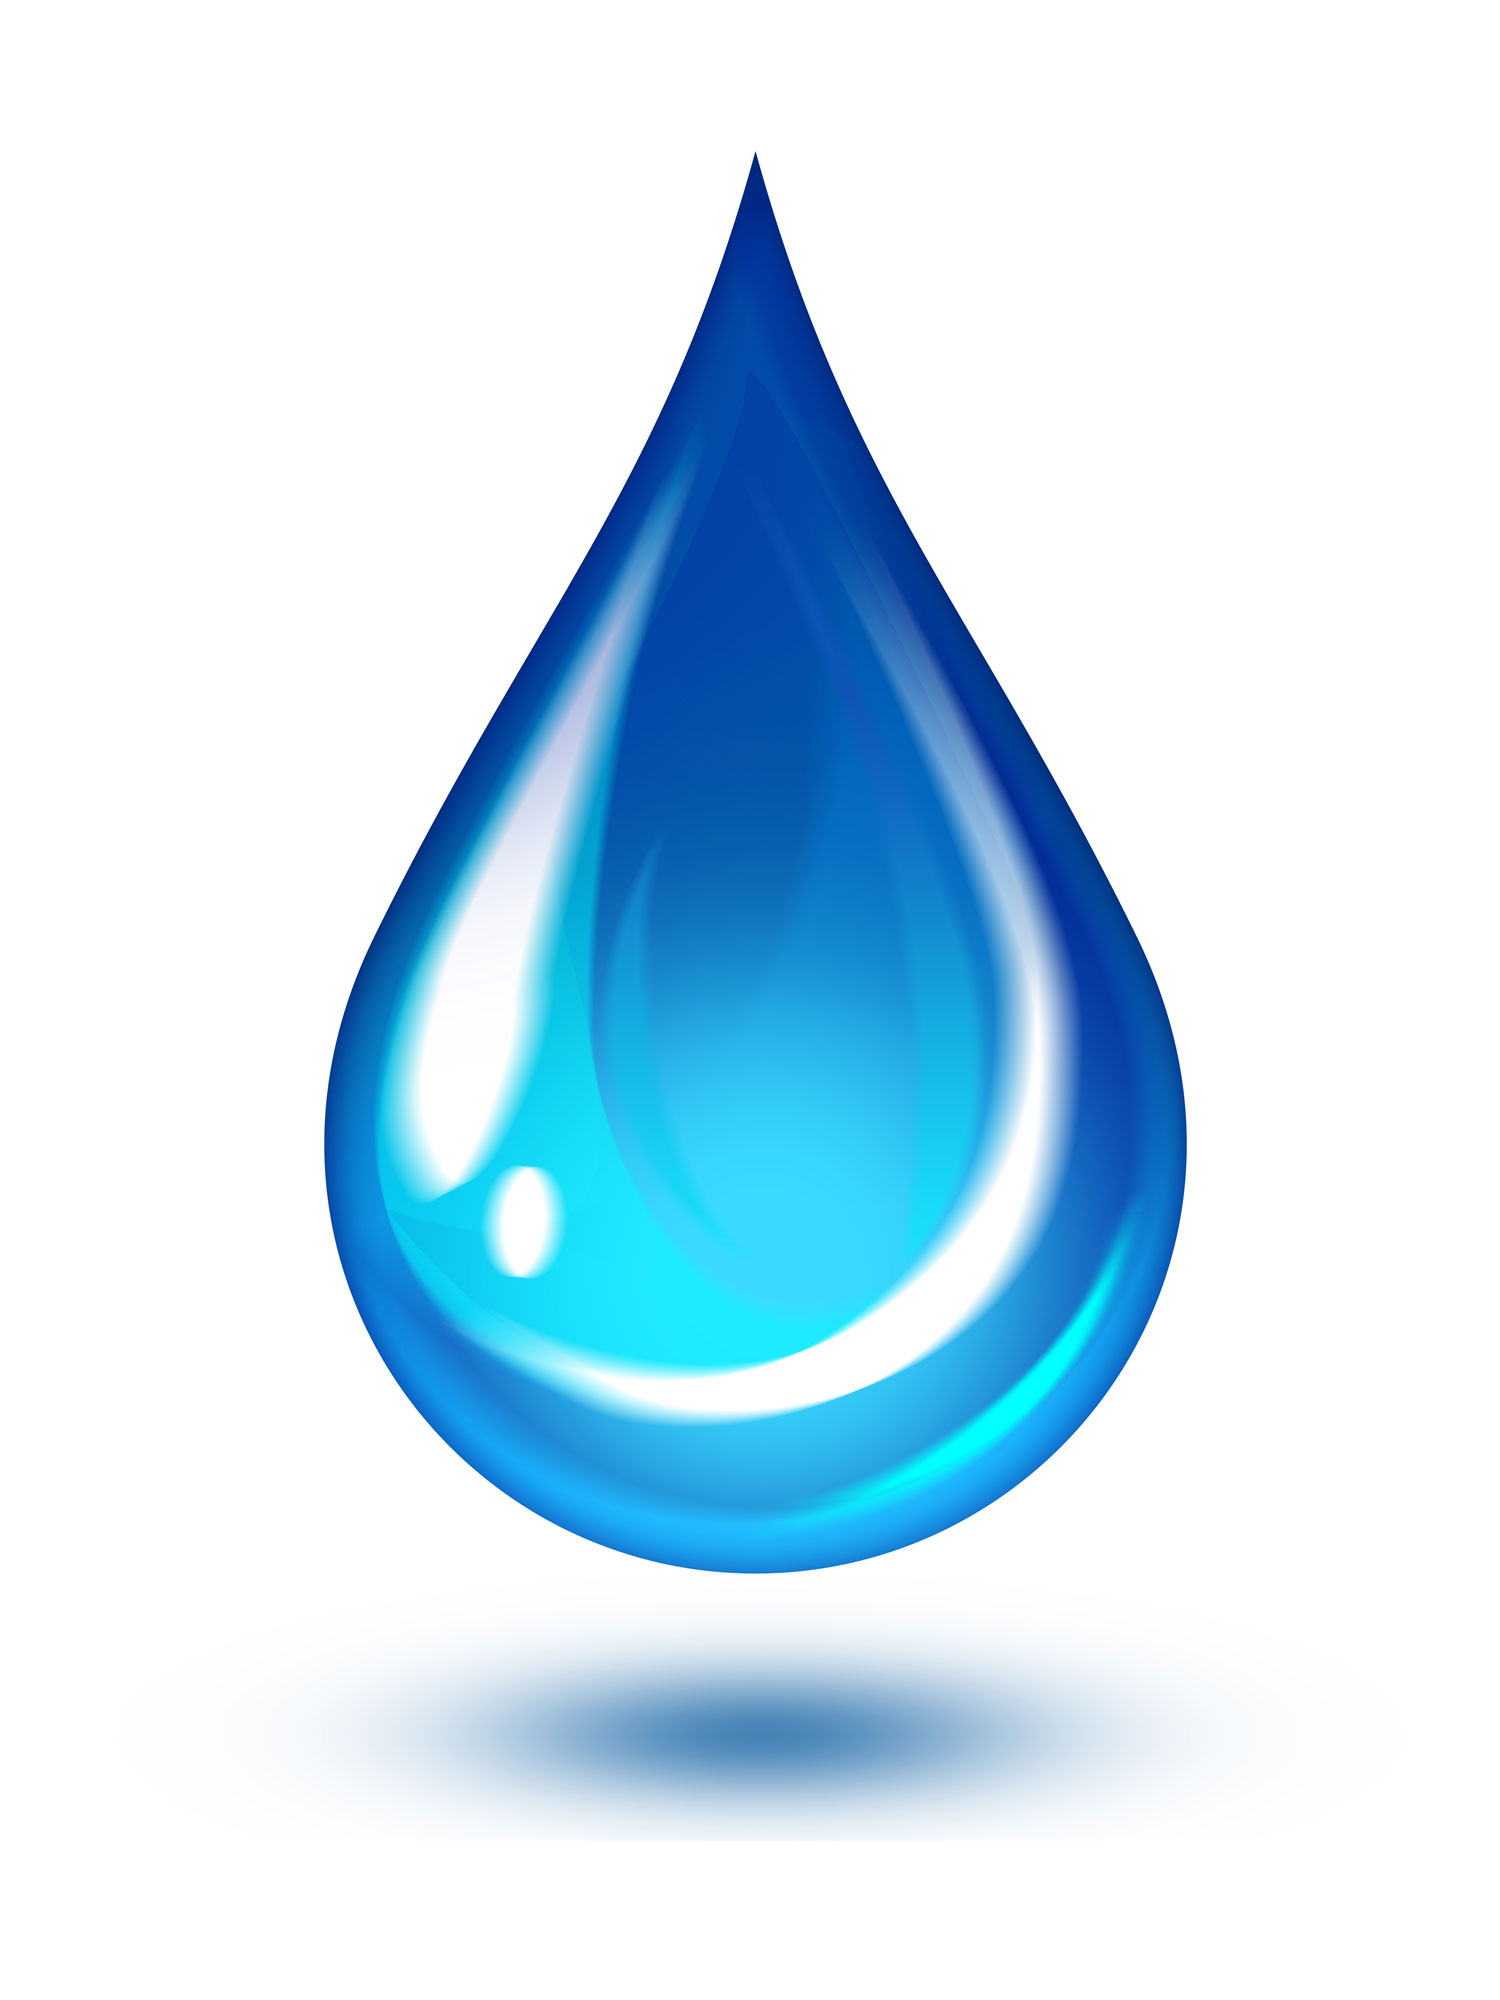 Water Drop Images | Free download on ClipArtMag